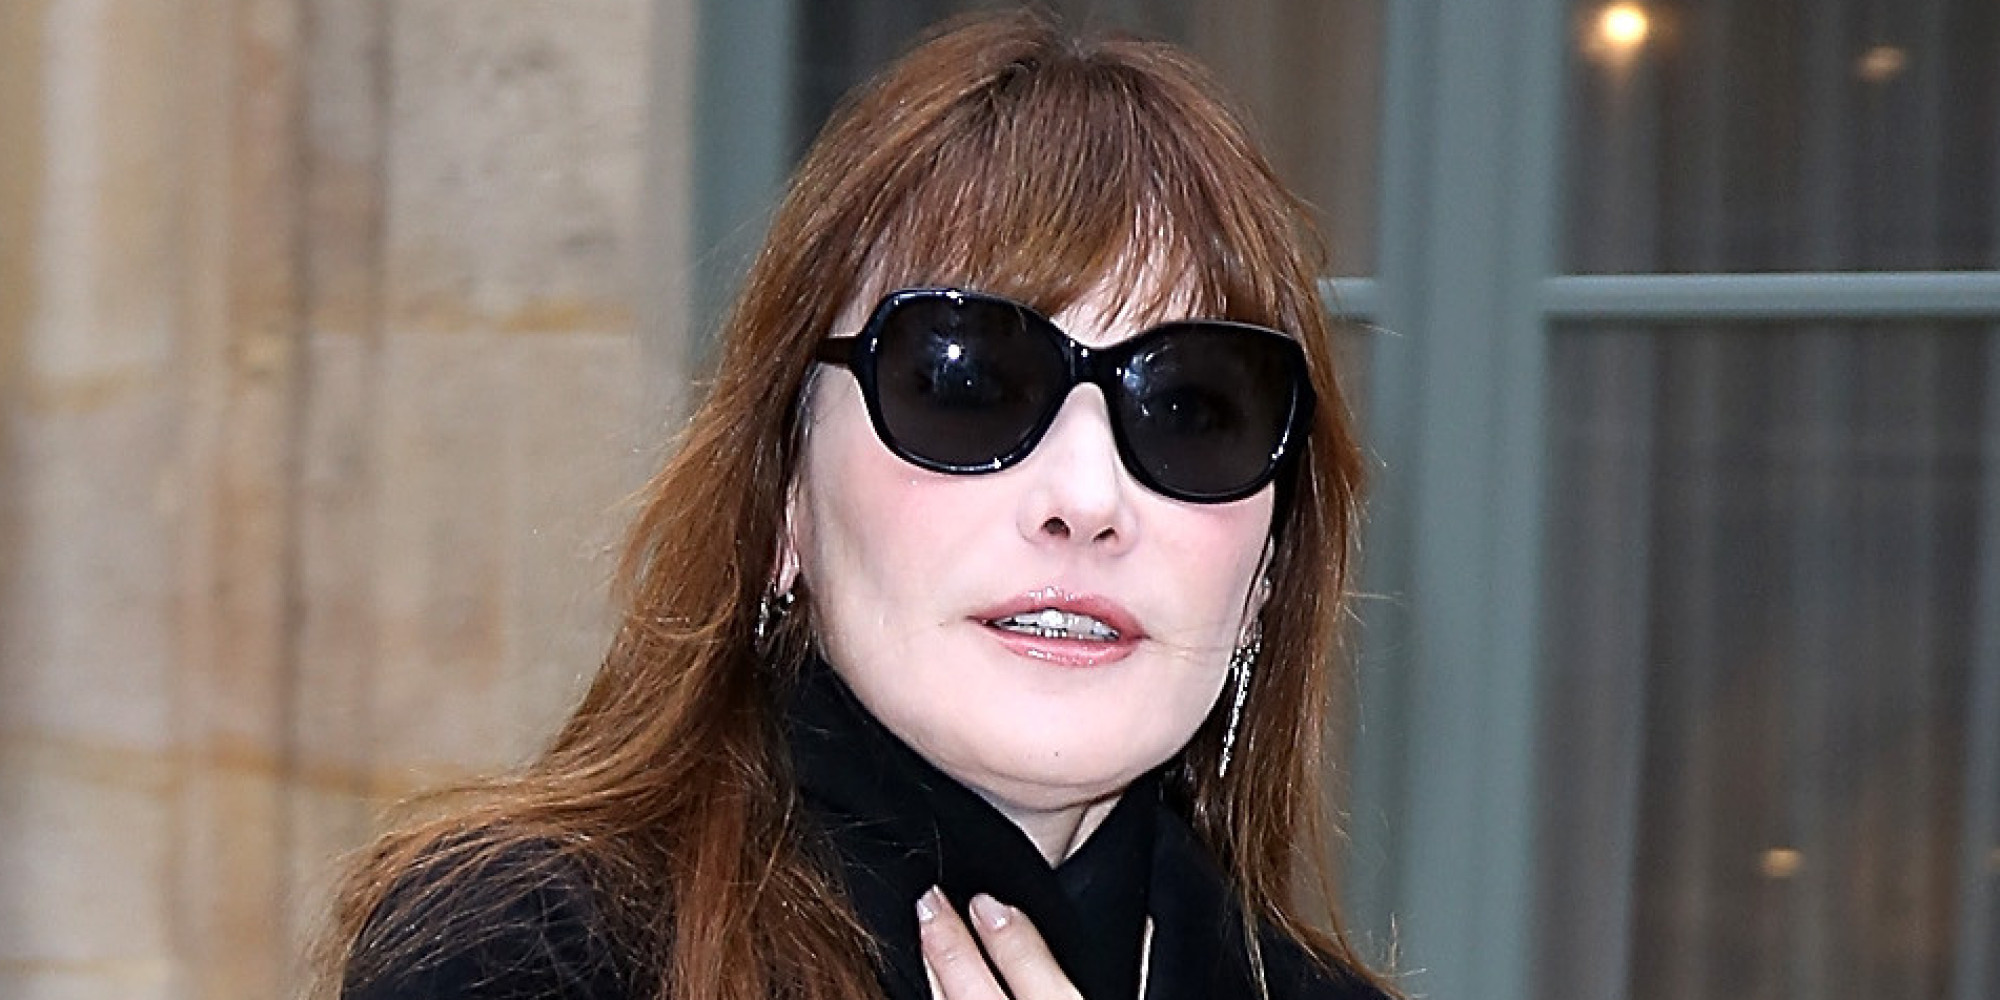 Carla bruni hits fashion show in leather pants because for Bruni arredamento